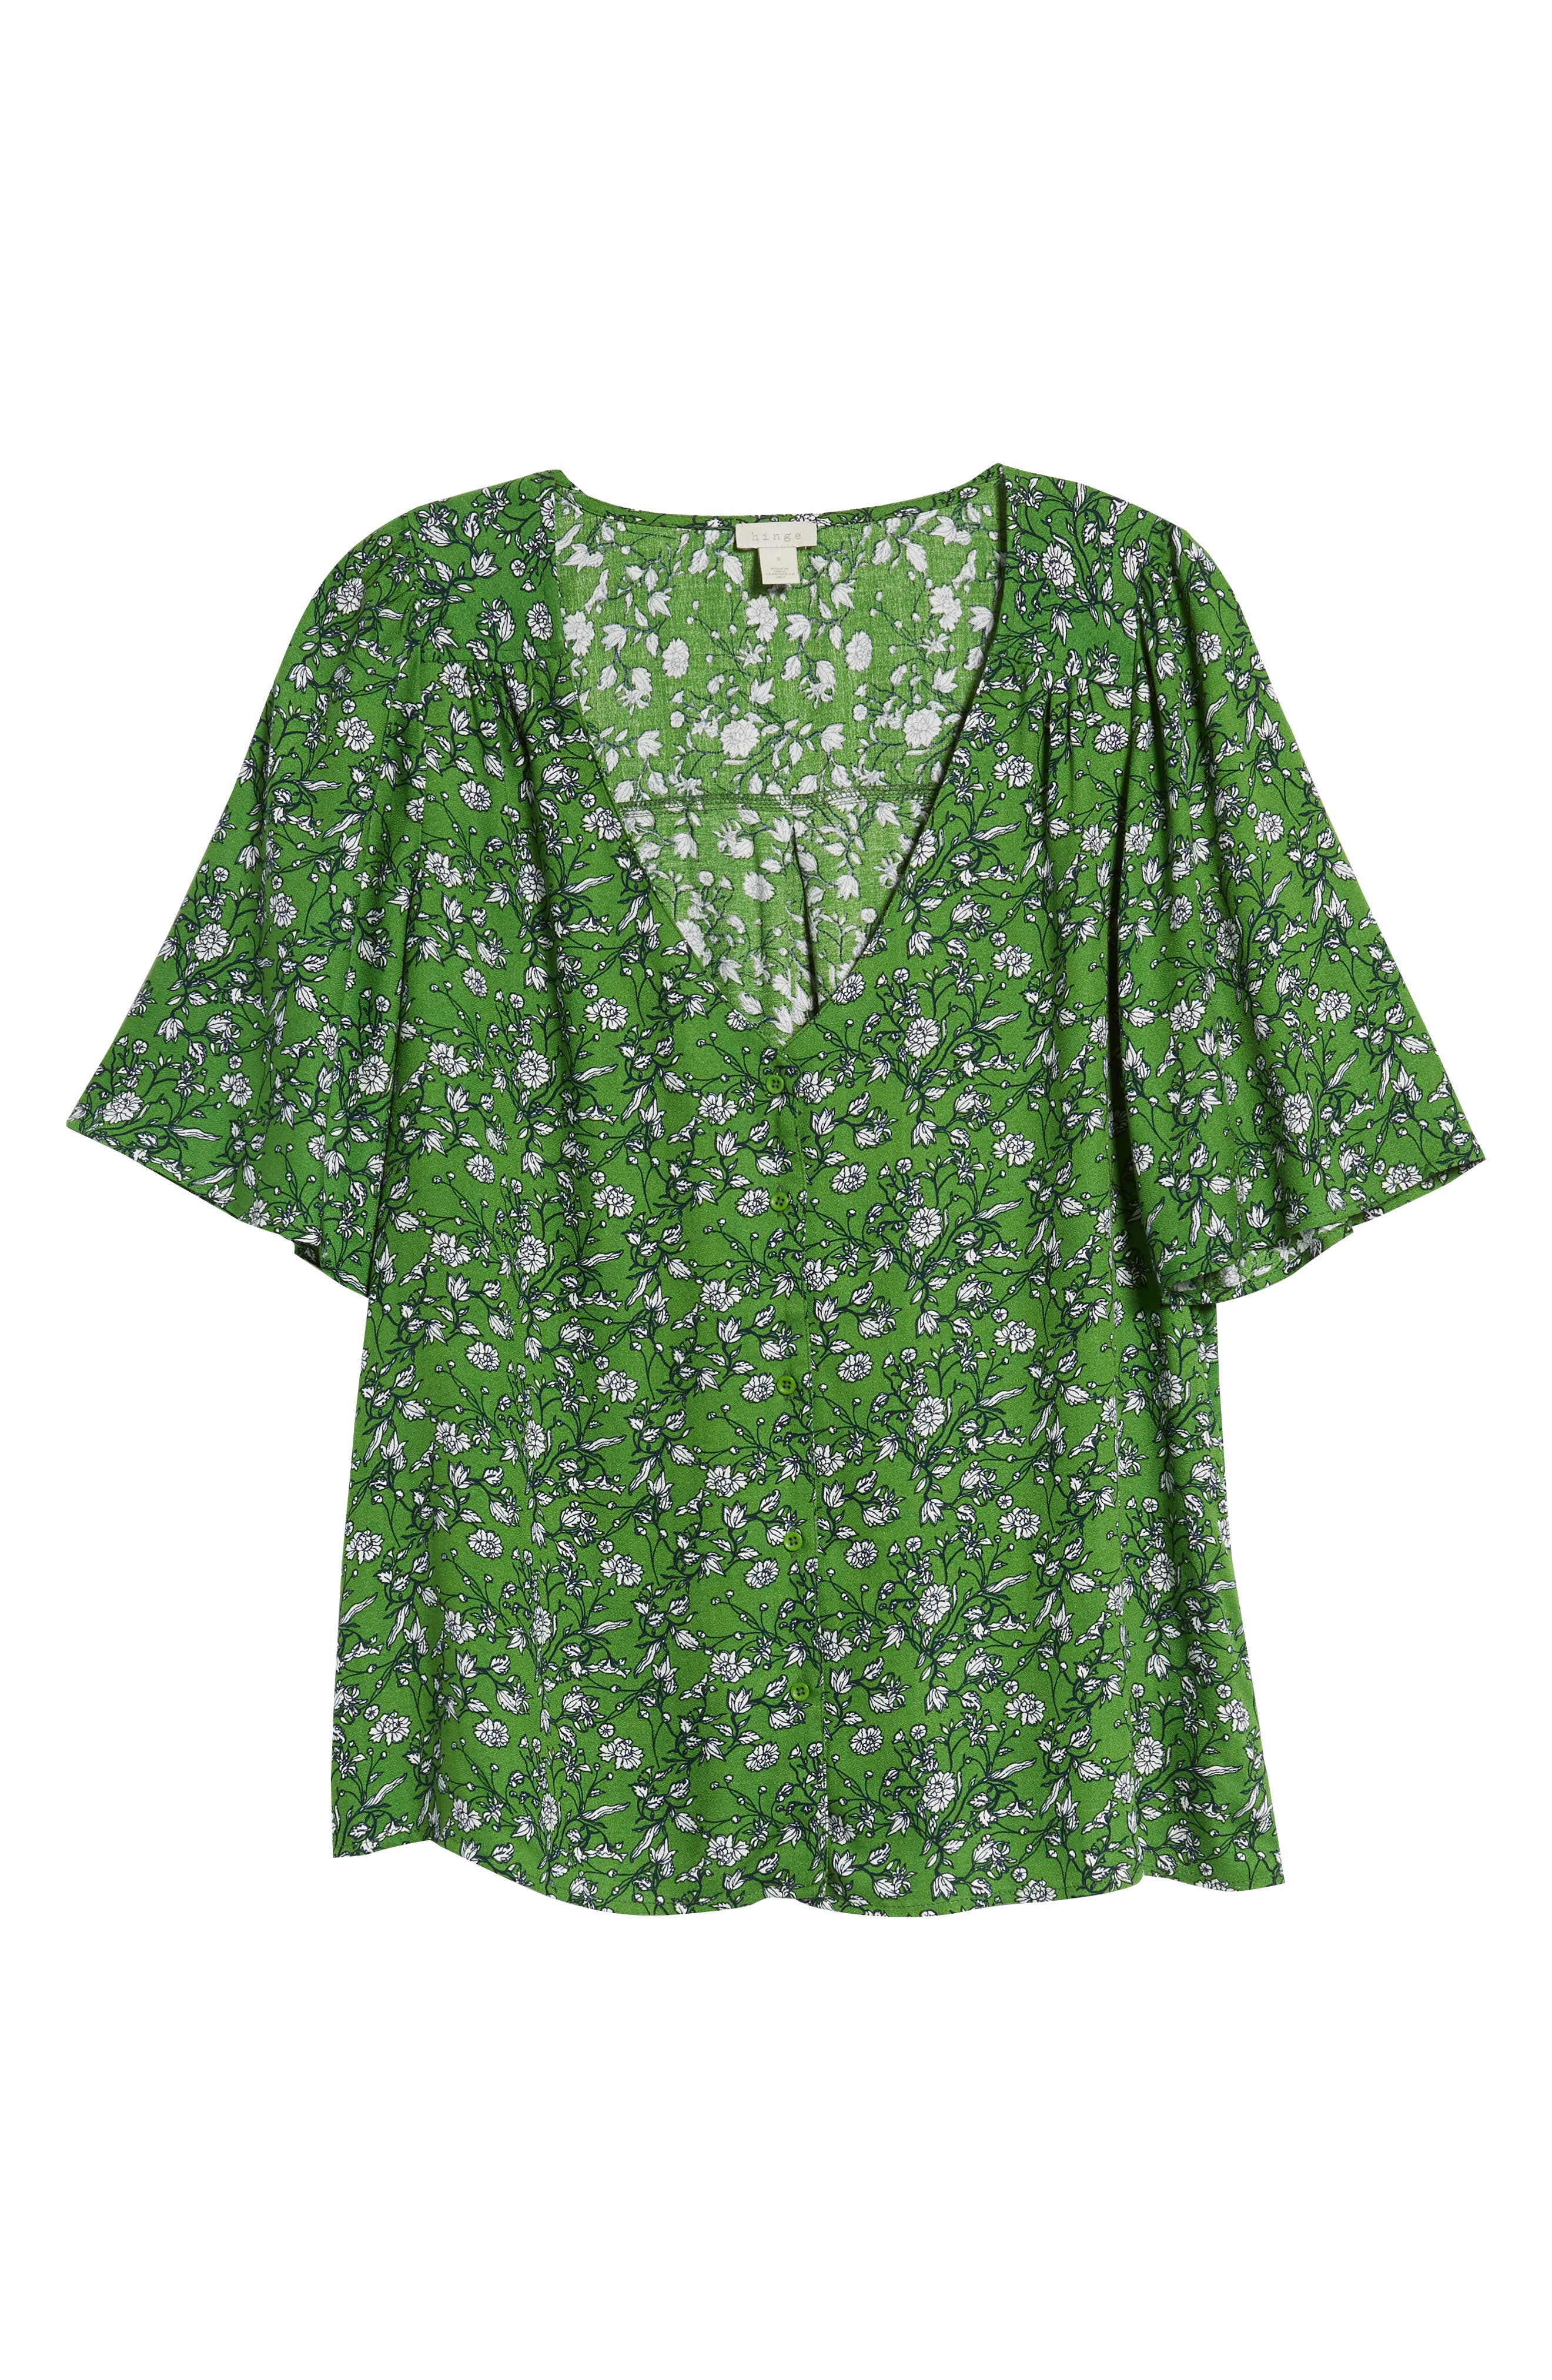 Button Front V-Neck Top,                             Alternate thumbnail 7, color,                             GREEN CANOPY FLOWER BRANCHES